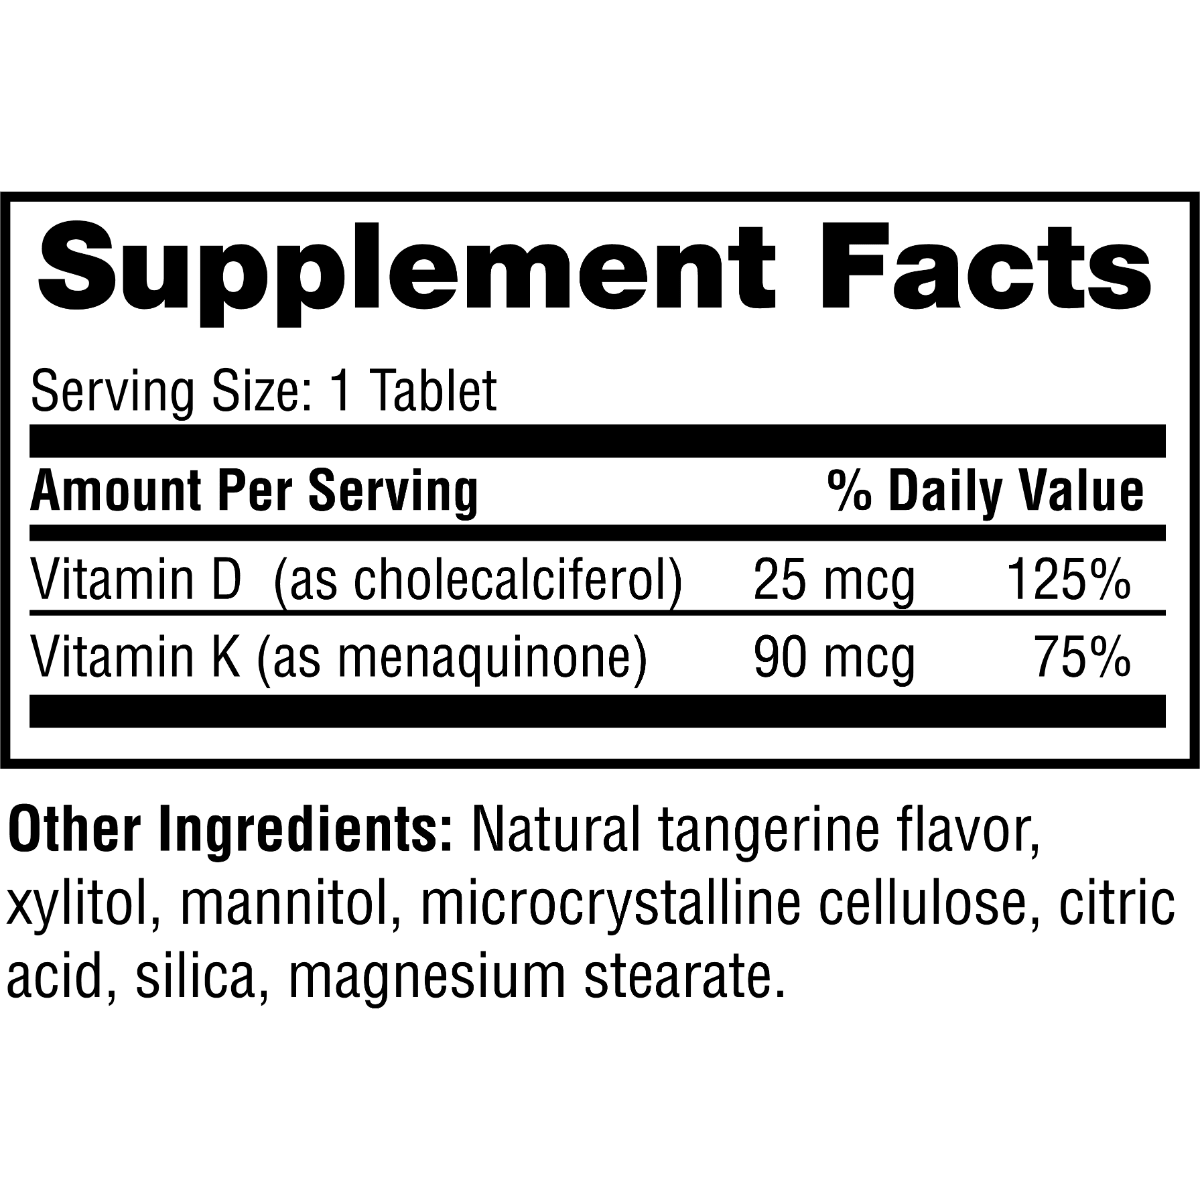 Supplement facts for Twinlab Vitamin D3 1000 + K2 Dots